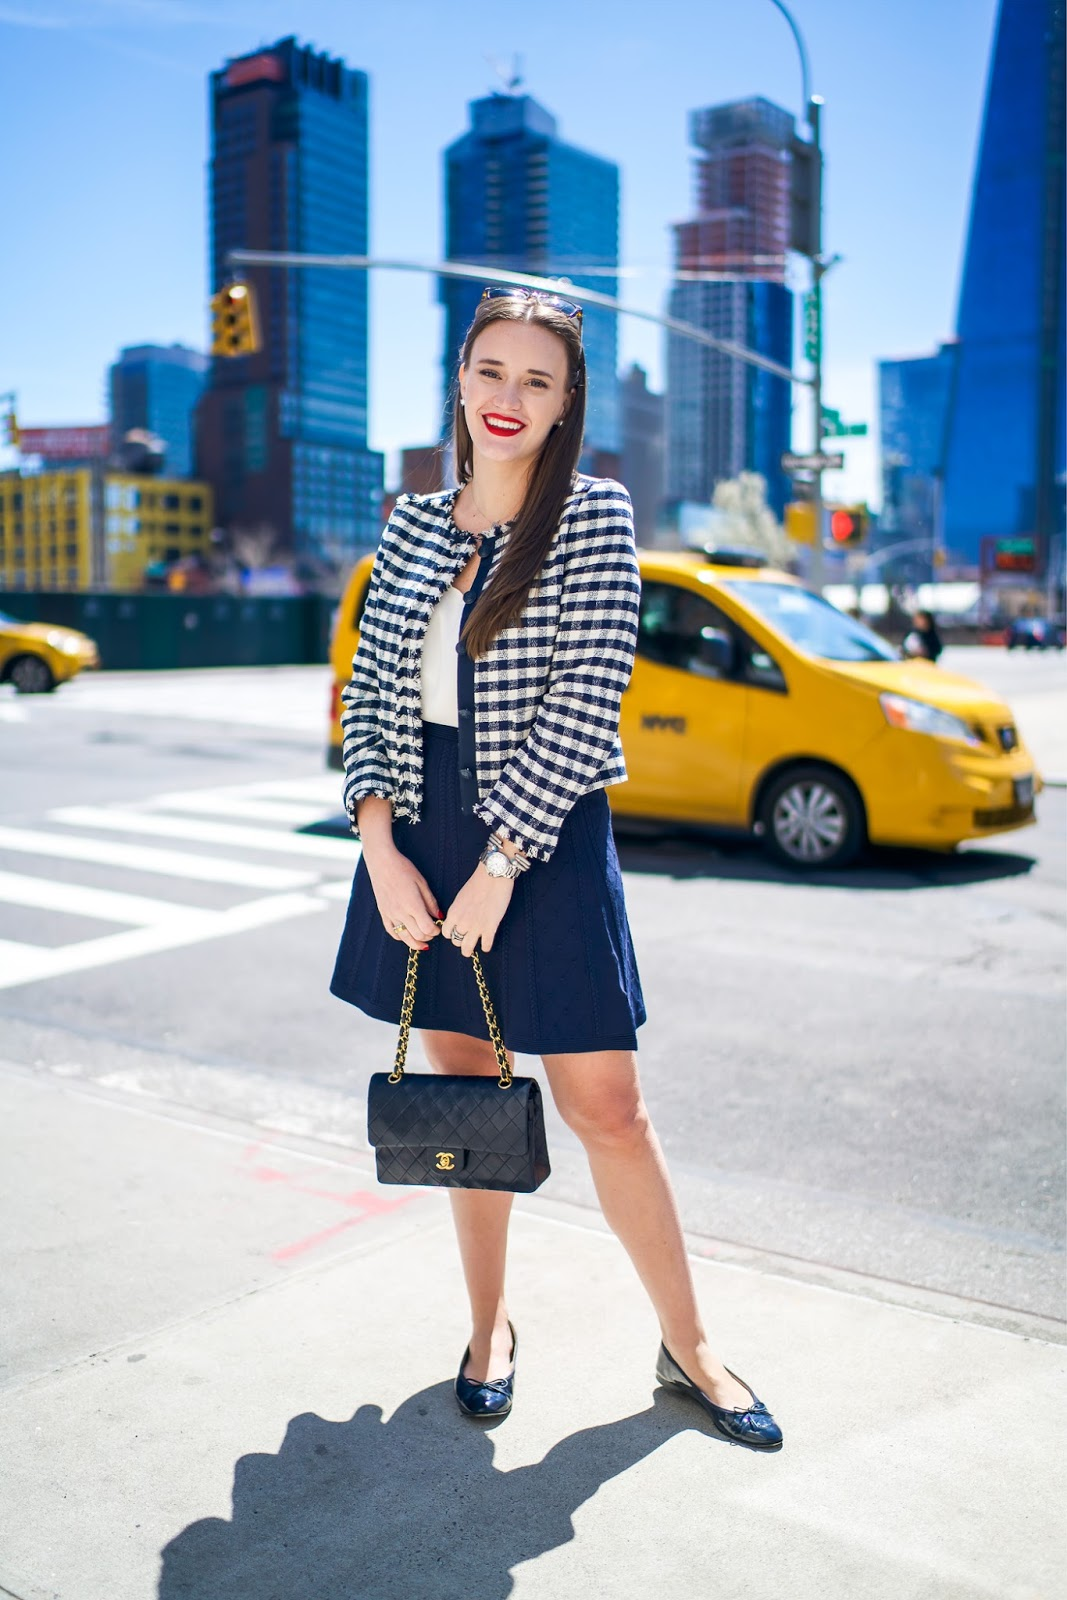 A Classic Look That Will Never Go Out of Style by popular New York fashion blogger, Covering the Bases